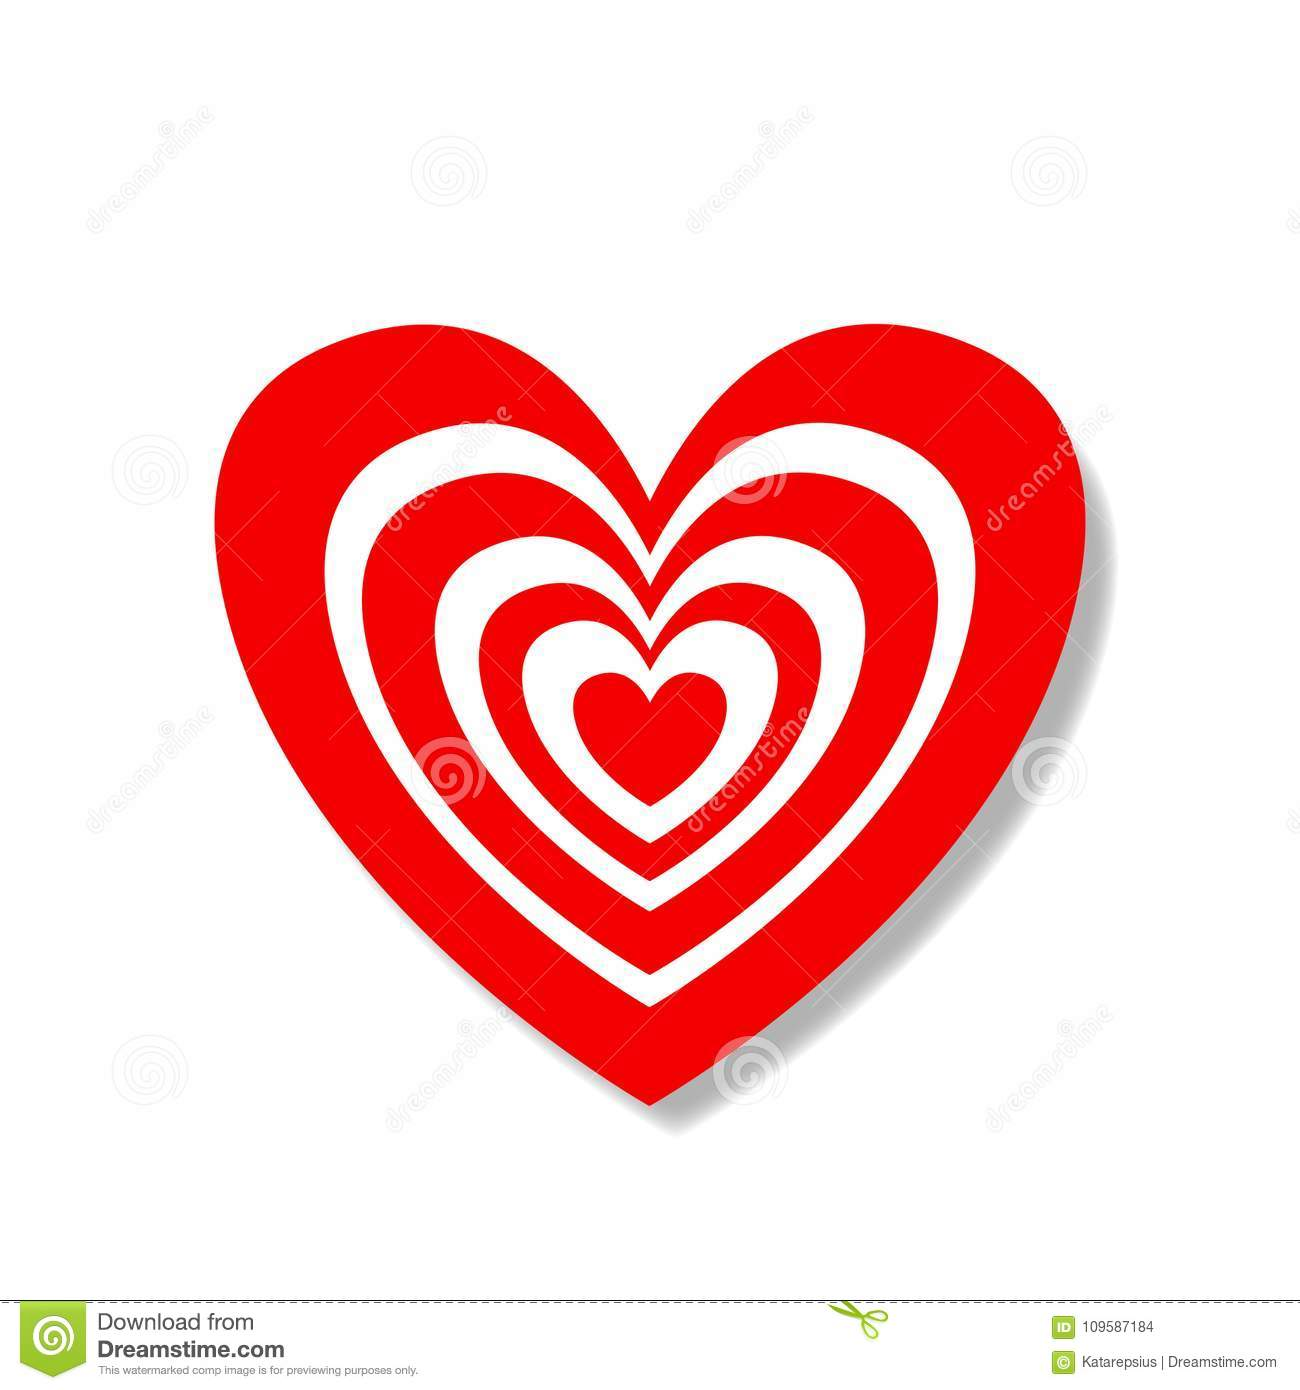 Big heart sticker with red and white target pattern stock vector big heart sticker with red and white target pattern buycottarizona Image collections